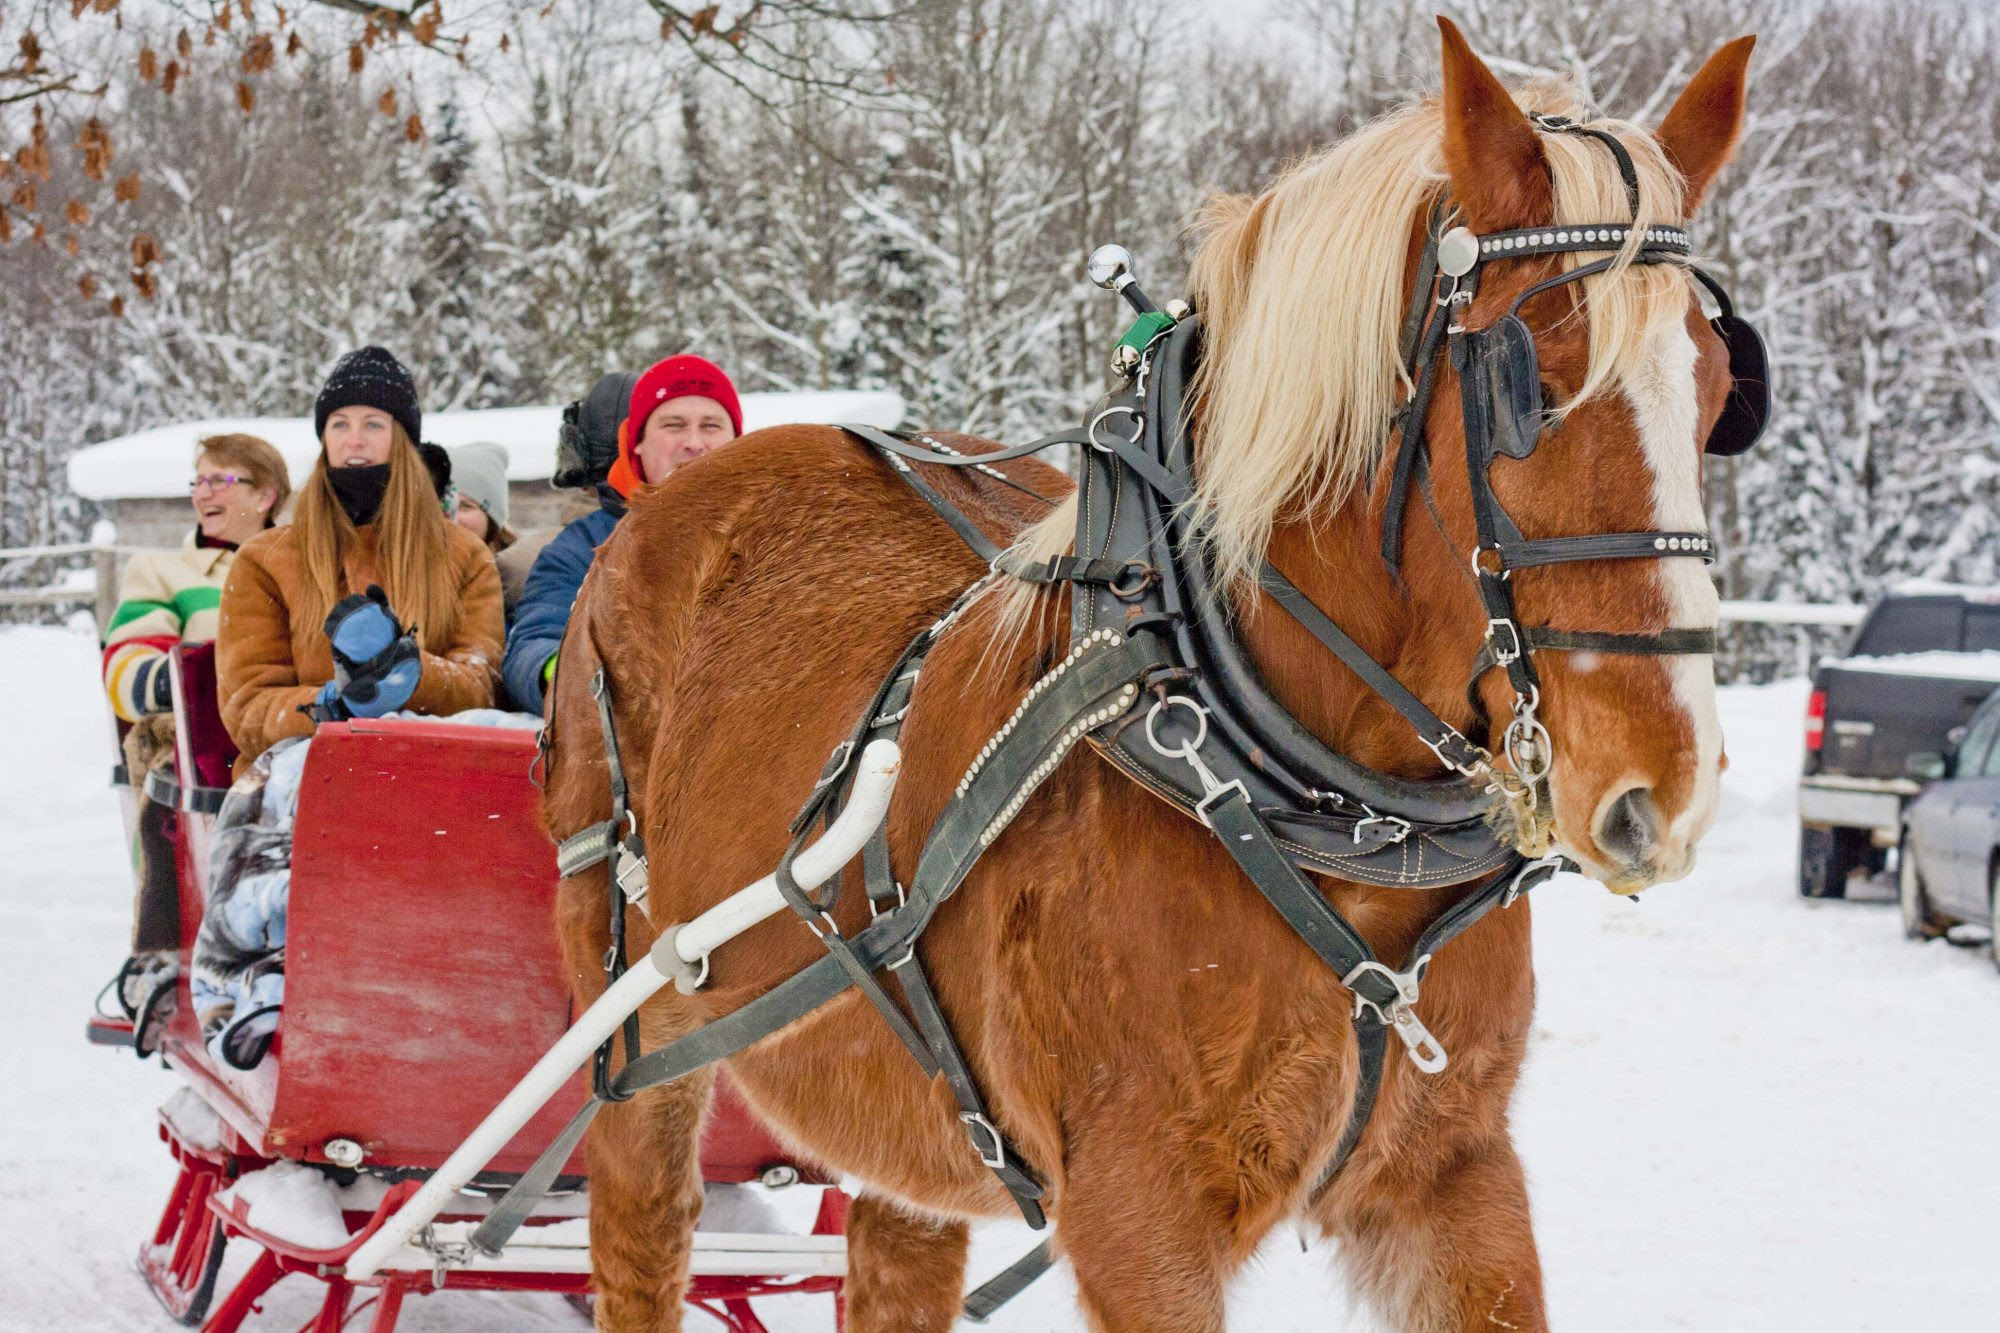 One Horse Open Sleigh Back Of Beyond Equine Centre